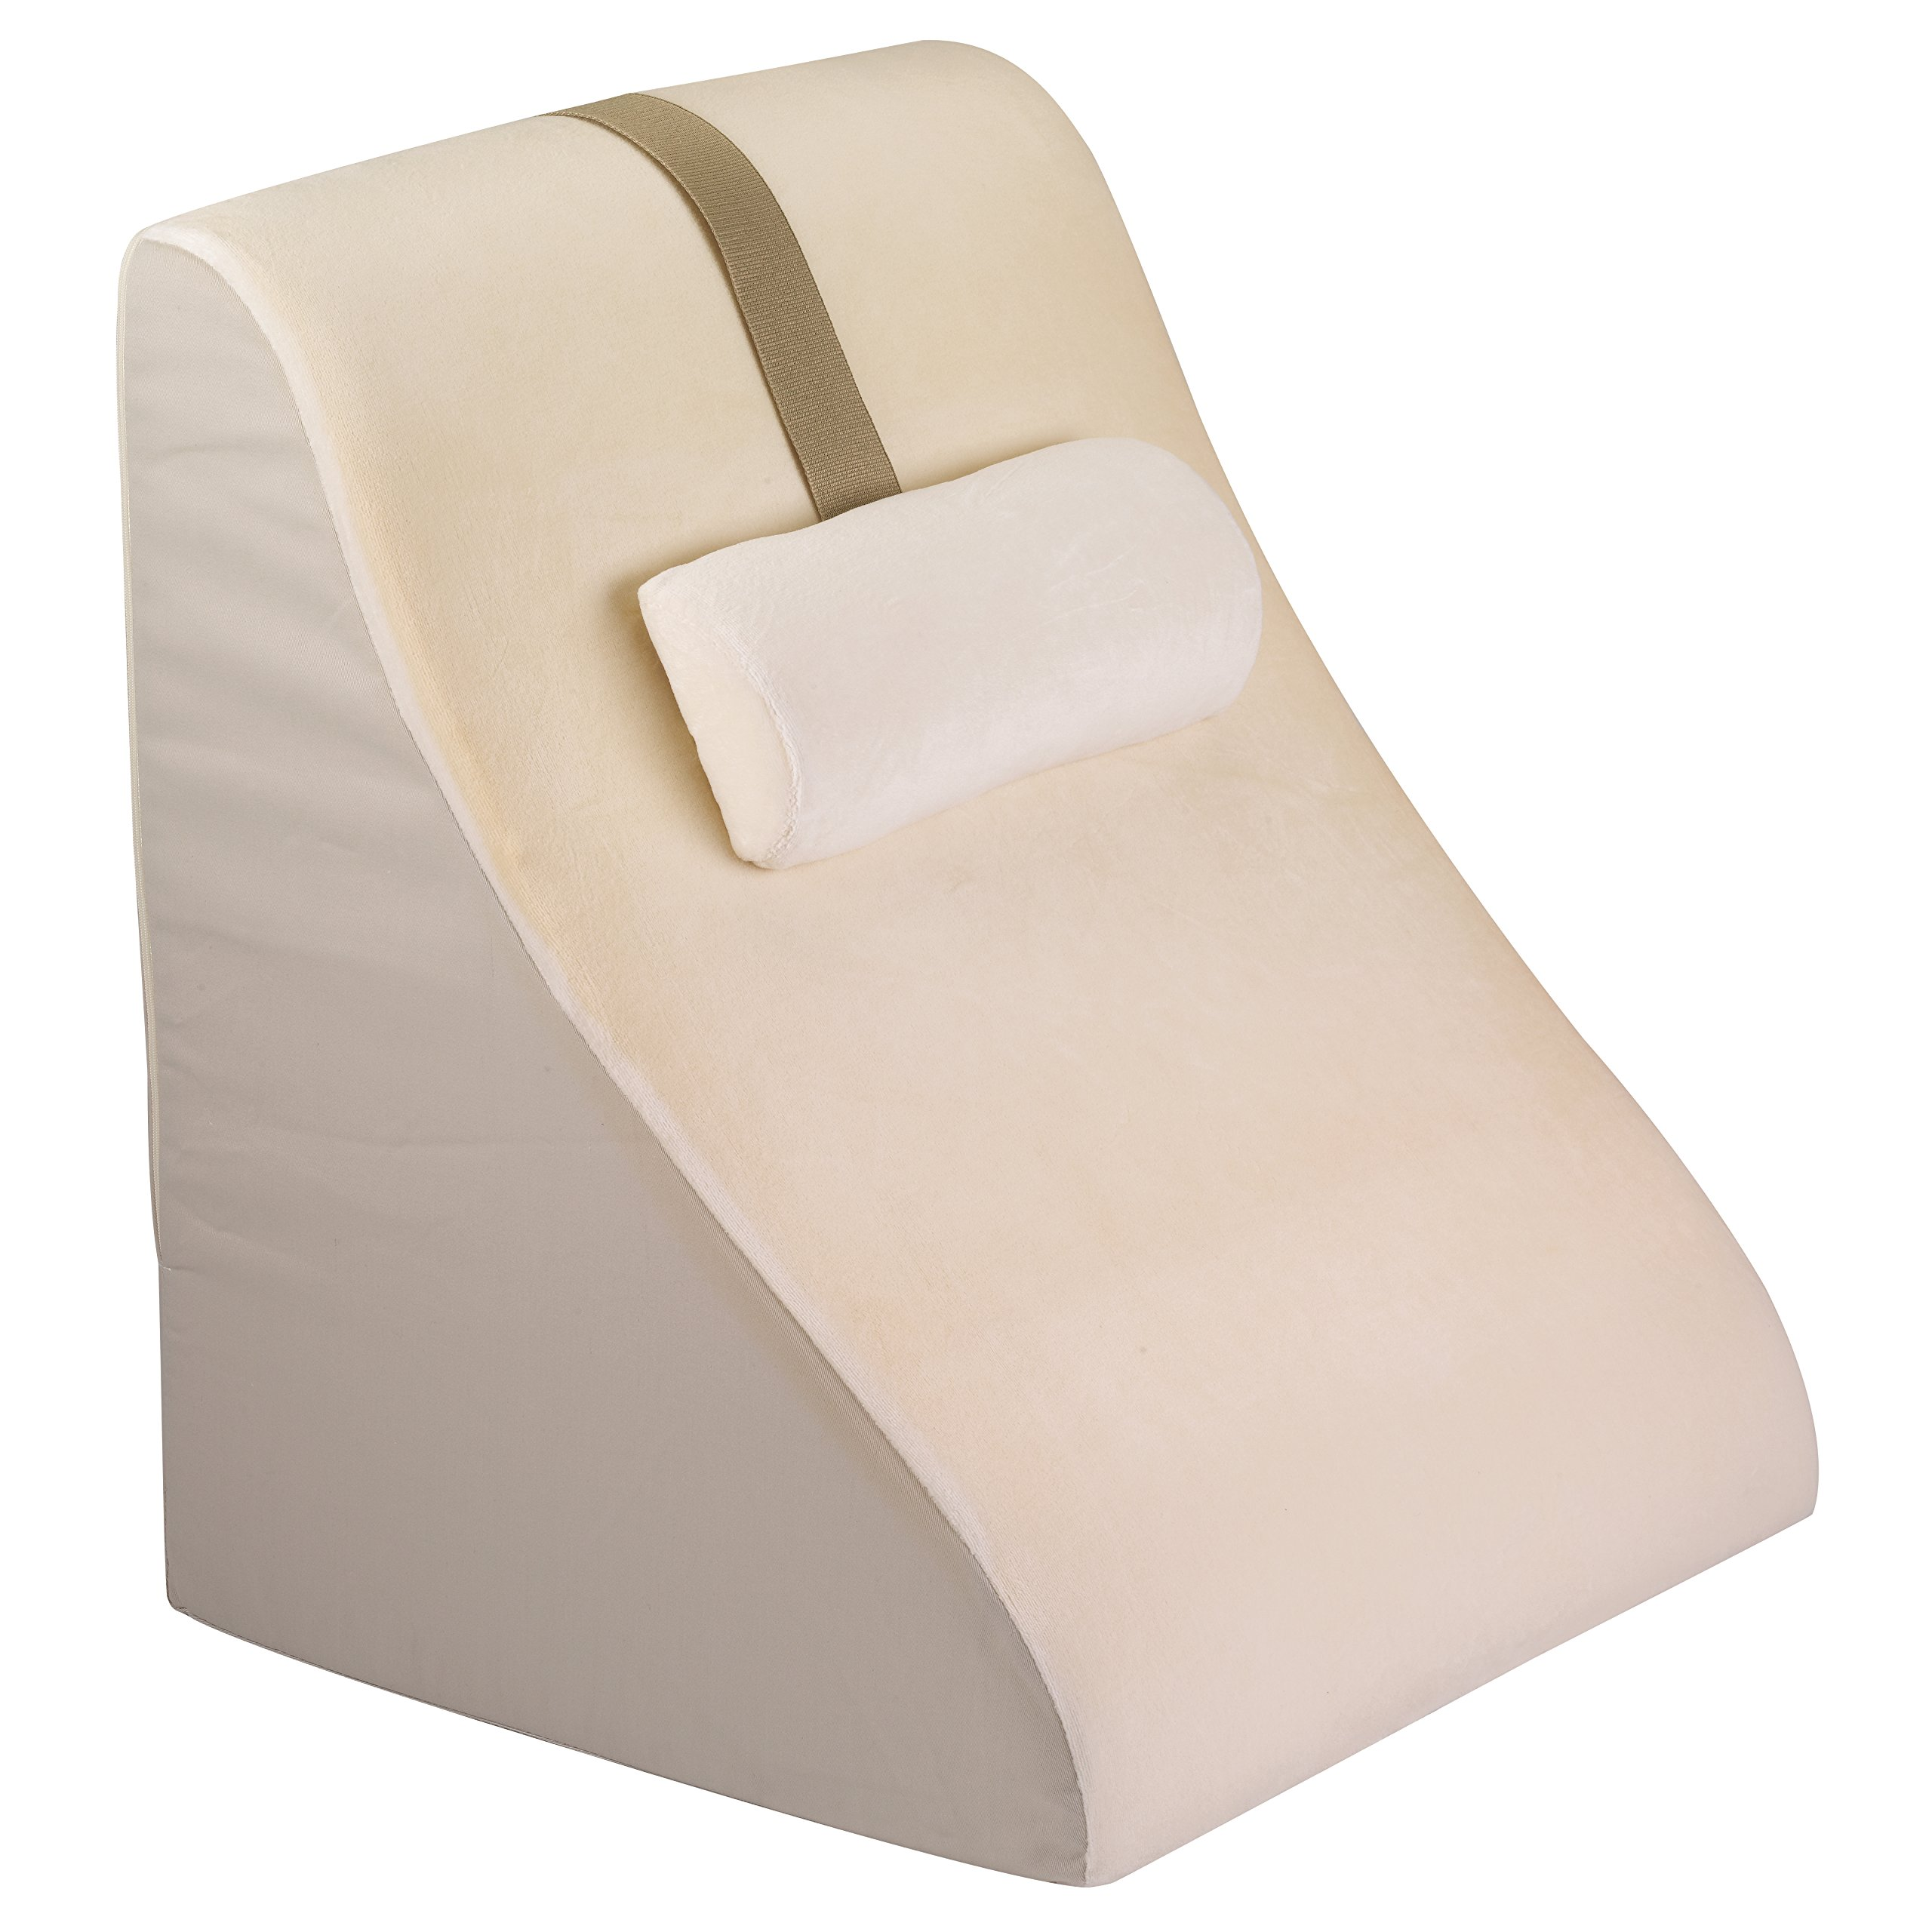 Jobri Bed Wedge With Memory Foam Back Support New